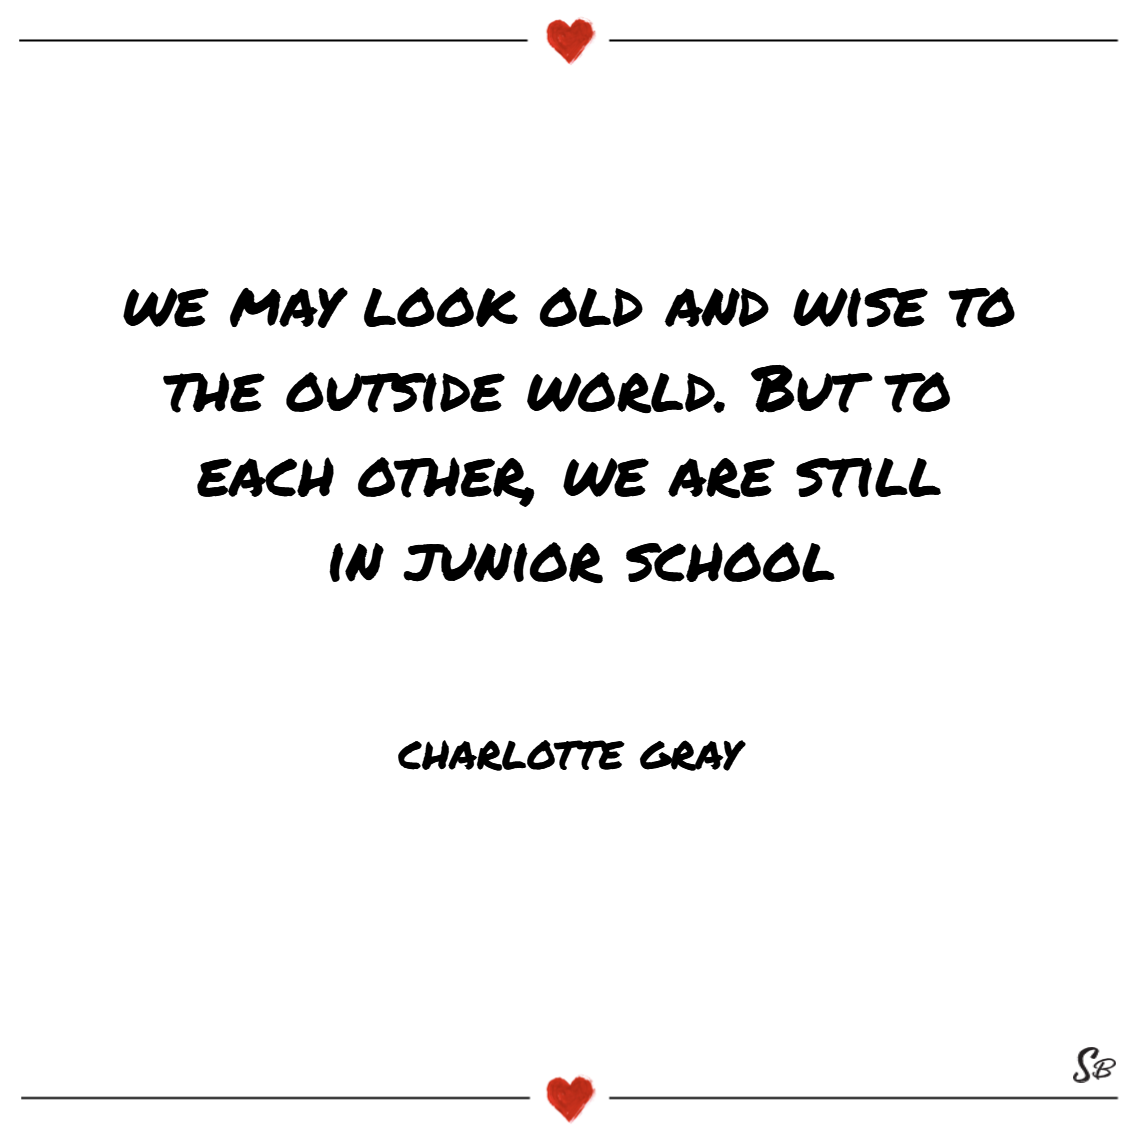 We may look old and wise to the outside world. but to each other, we are still in junior school. – charlotte gray (1)